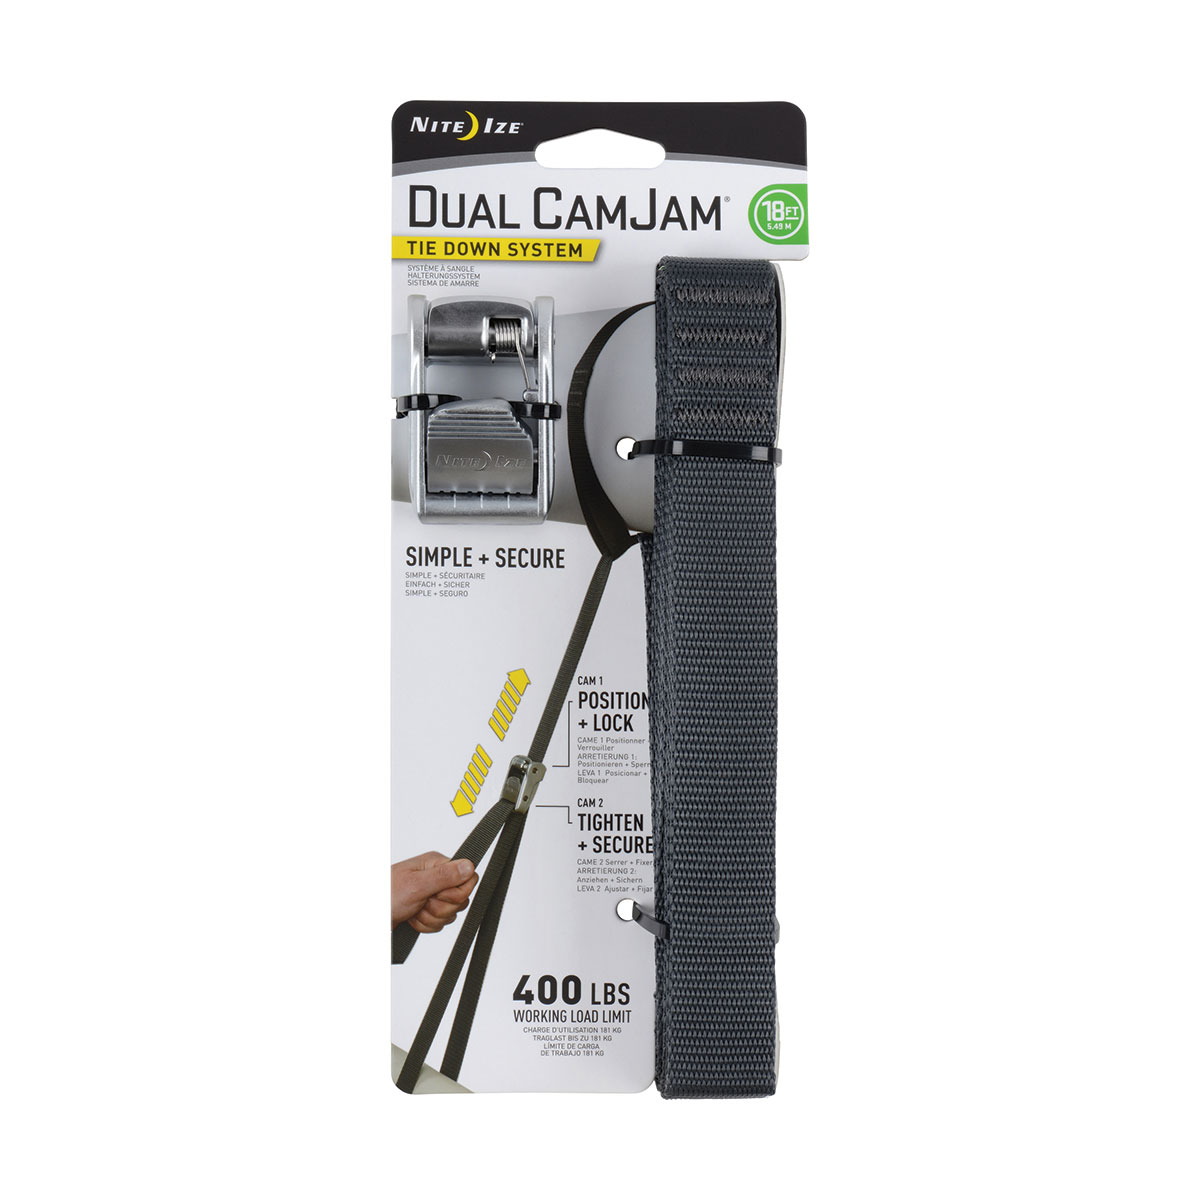 Dual CamJam Tie Down System 18 FT